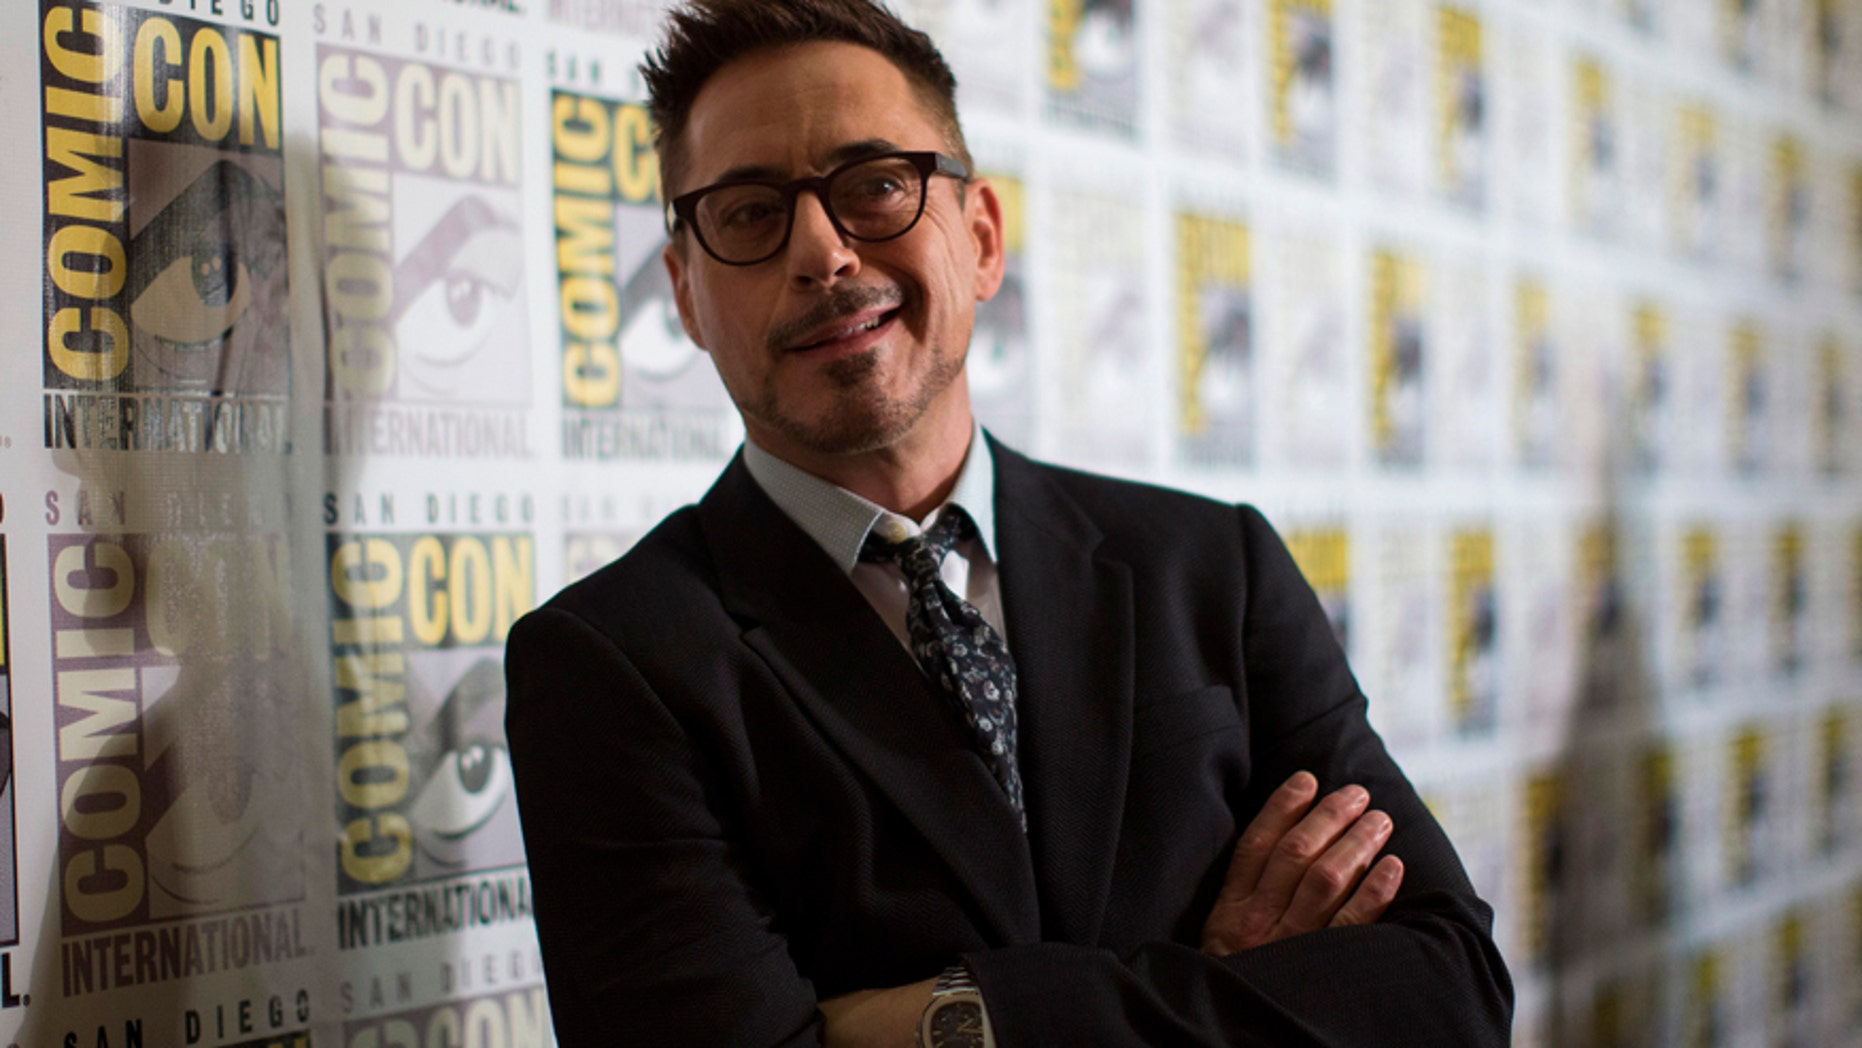 """Cast member Robert Downey Jr. poses at a press line for """"Avengers: Age of Ultron"""" during the 2014 Comic-Con International Convention in San Diego, California July 26, 2014."""